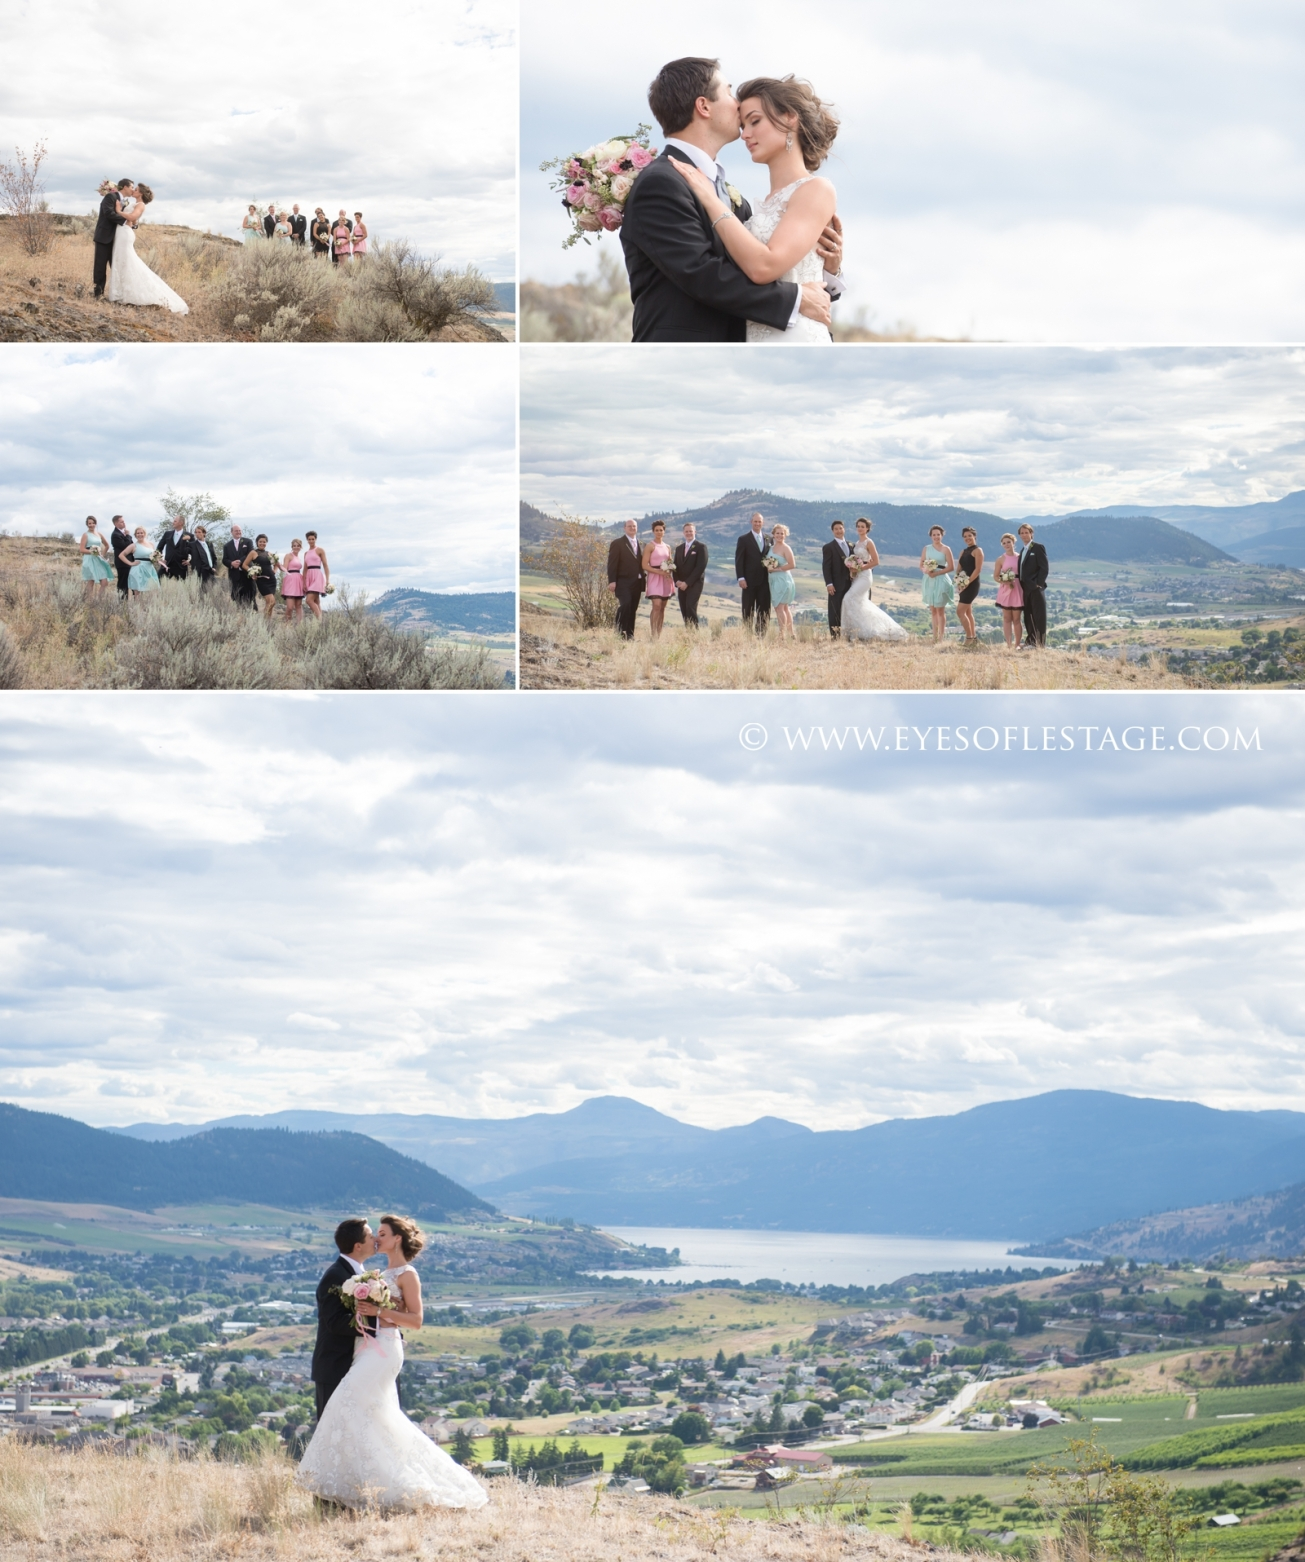 Kelowna Vernon Wedding Photography - Suzanne Le Stage - Durali Villa 10